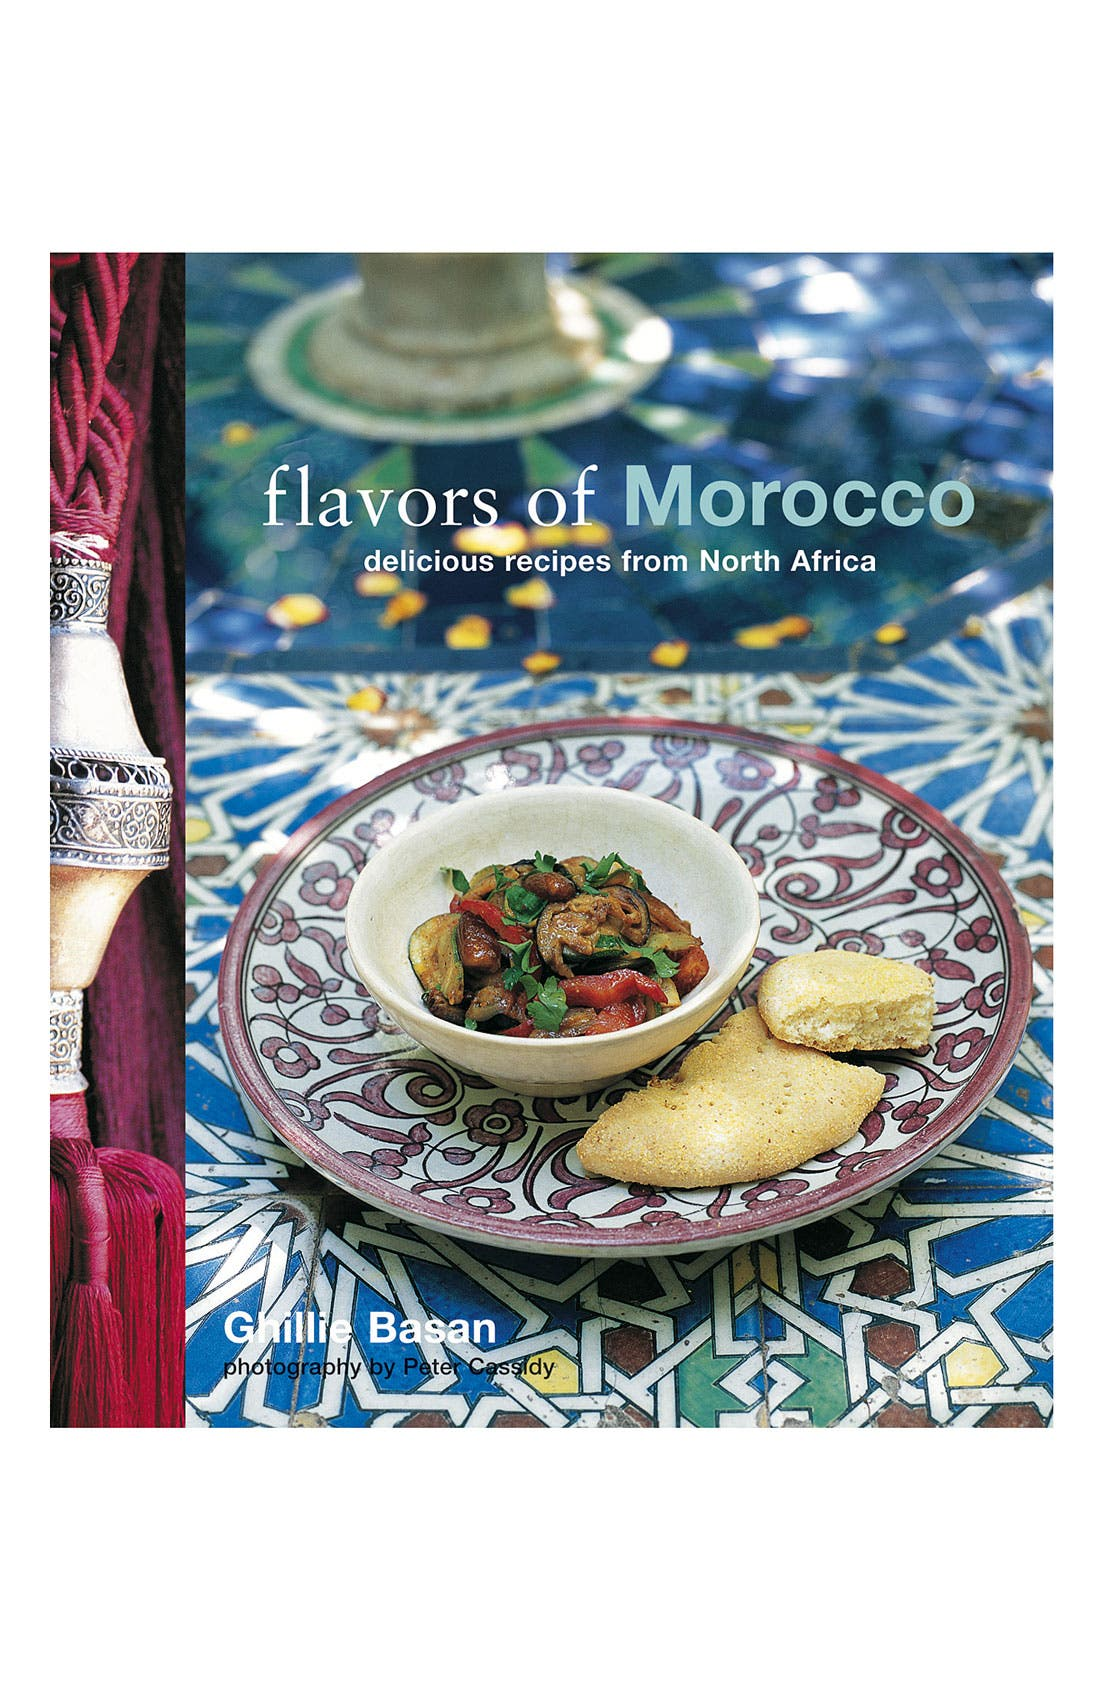 Alternate Image 1 Selected - Ghillie Basan 'Flavors of Morocco' Cookbook